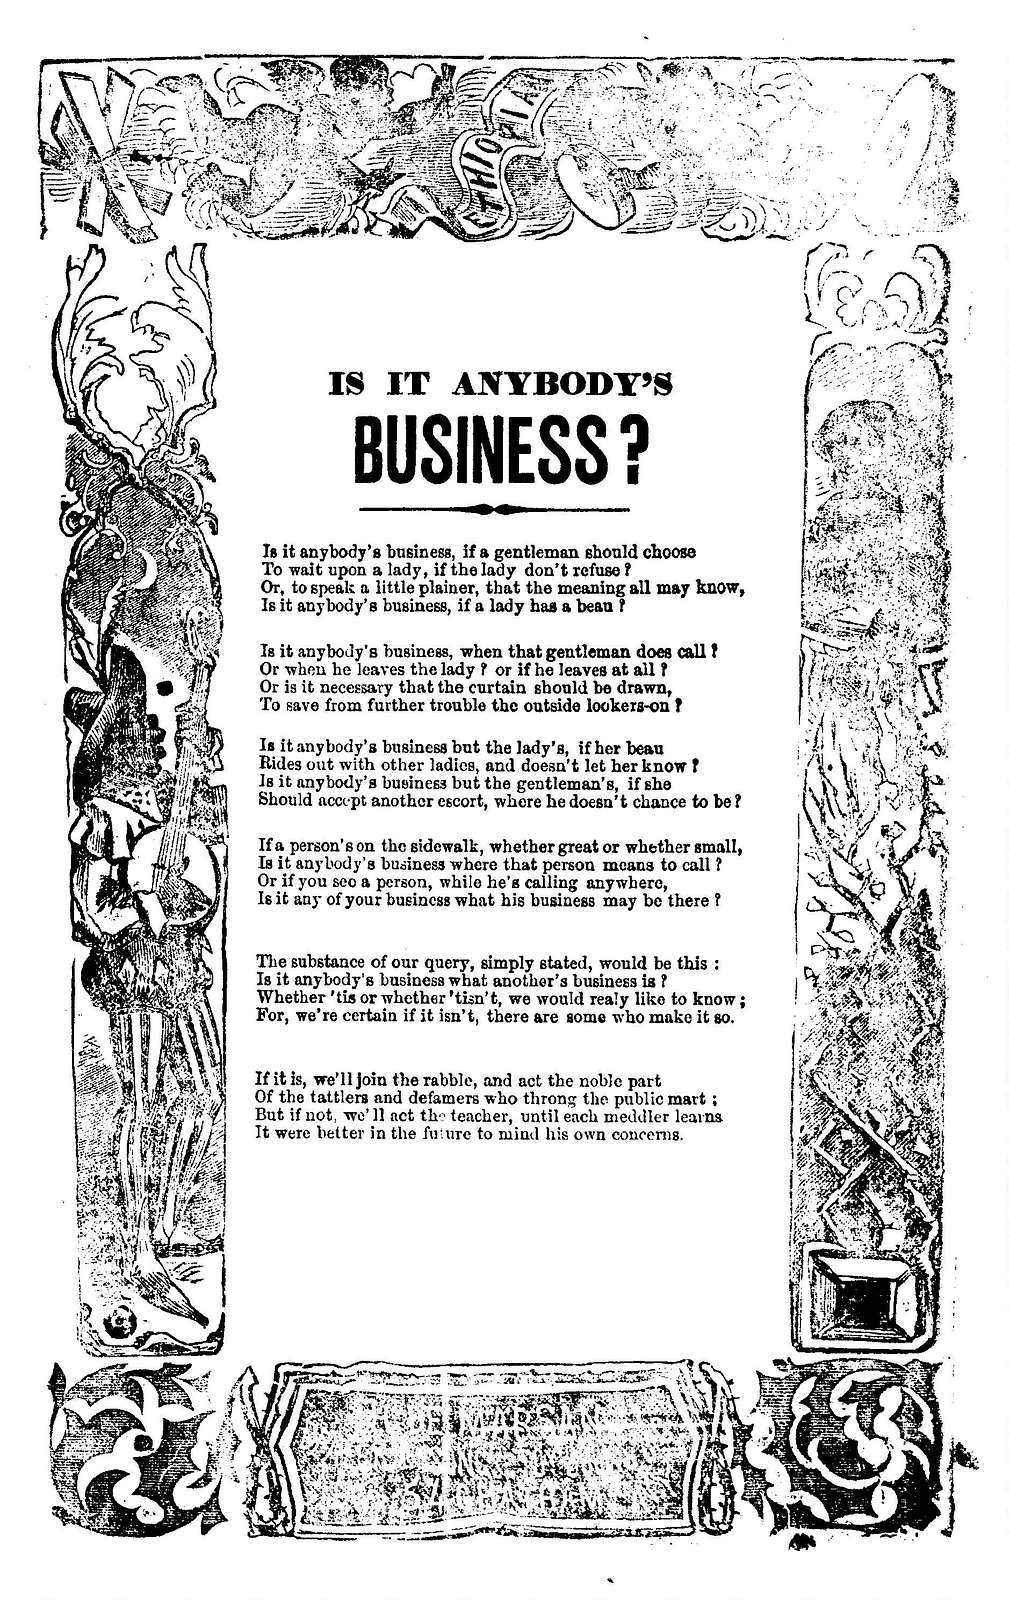 Is it anybody's business? H. De Marsan, Publisher, No. 54 Chatham Street, N. Y